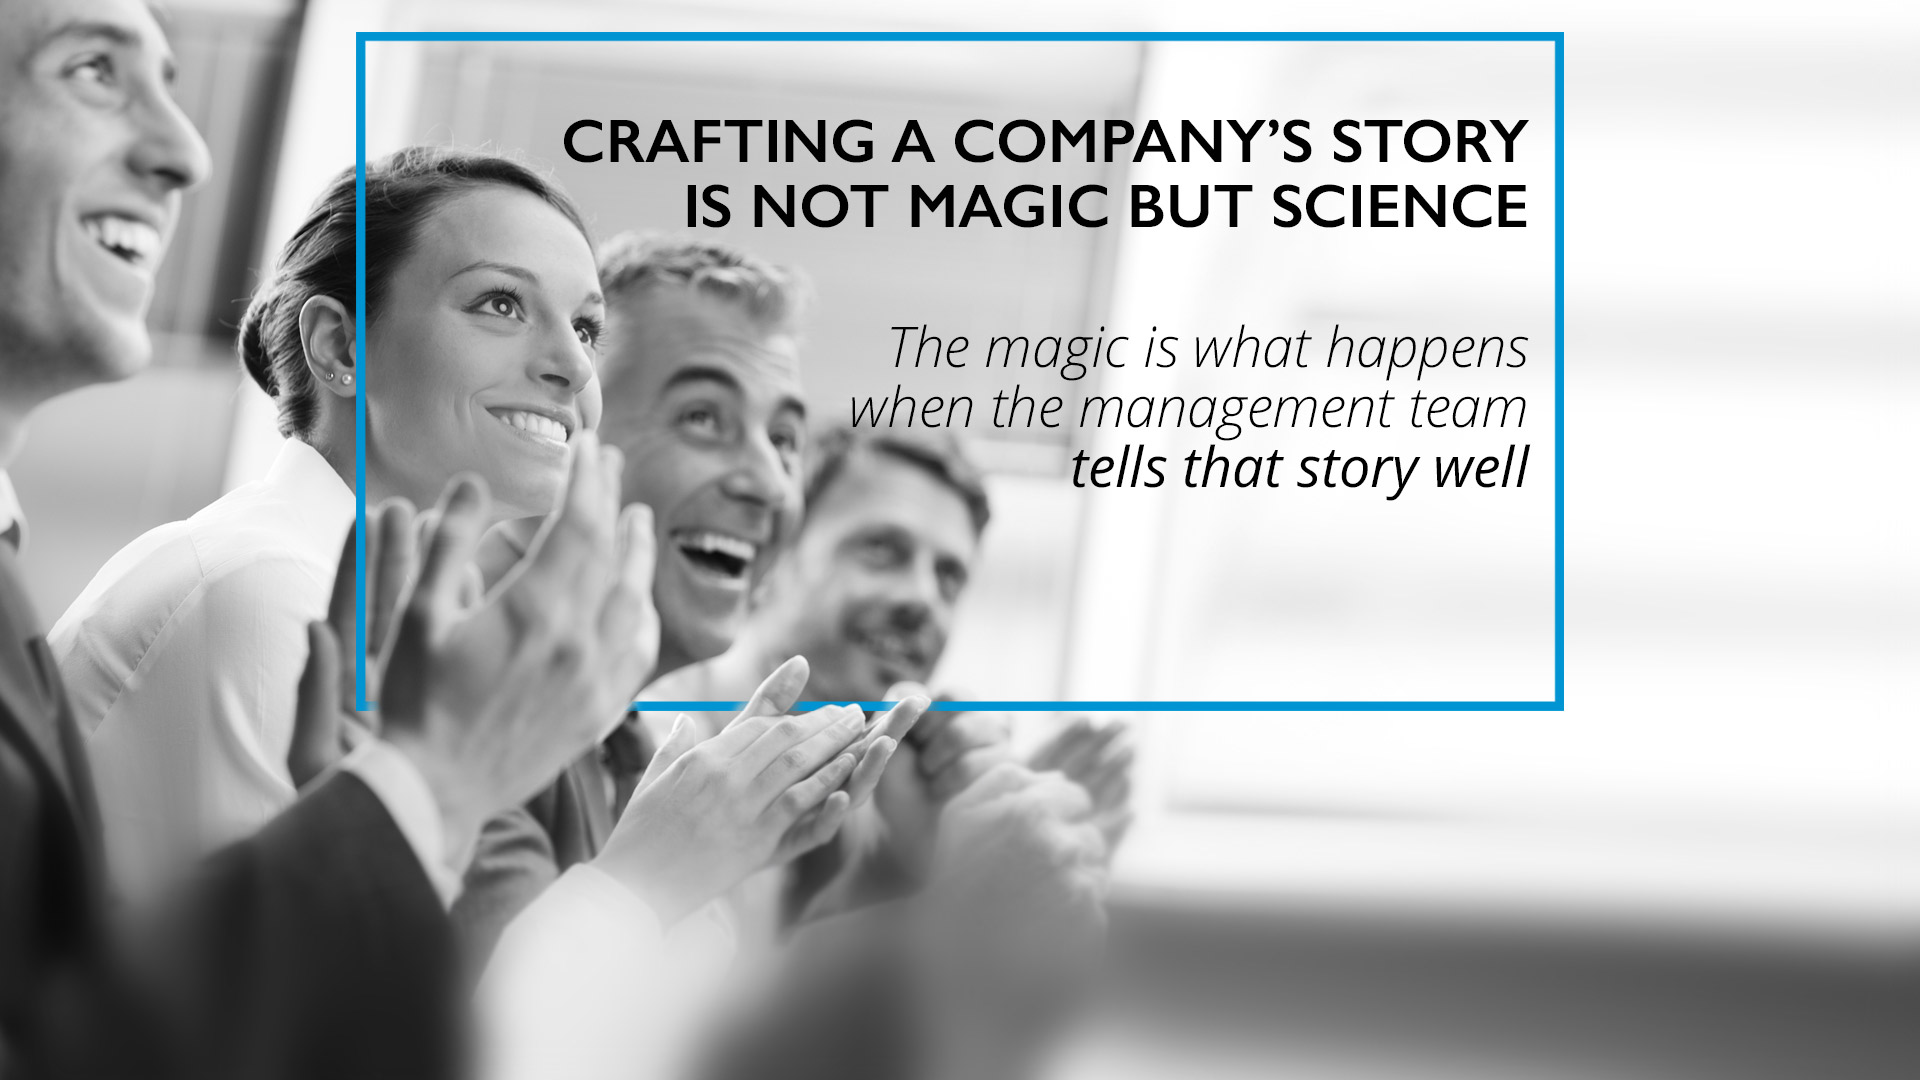 Team crafting a company's story